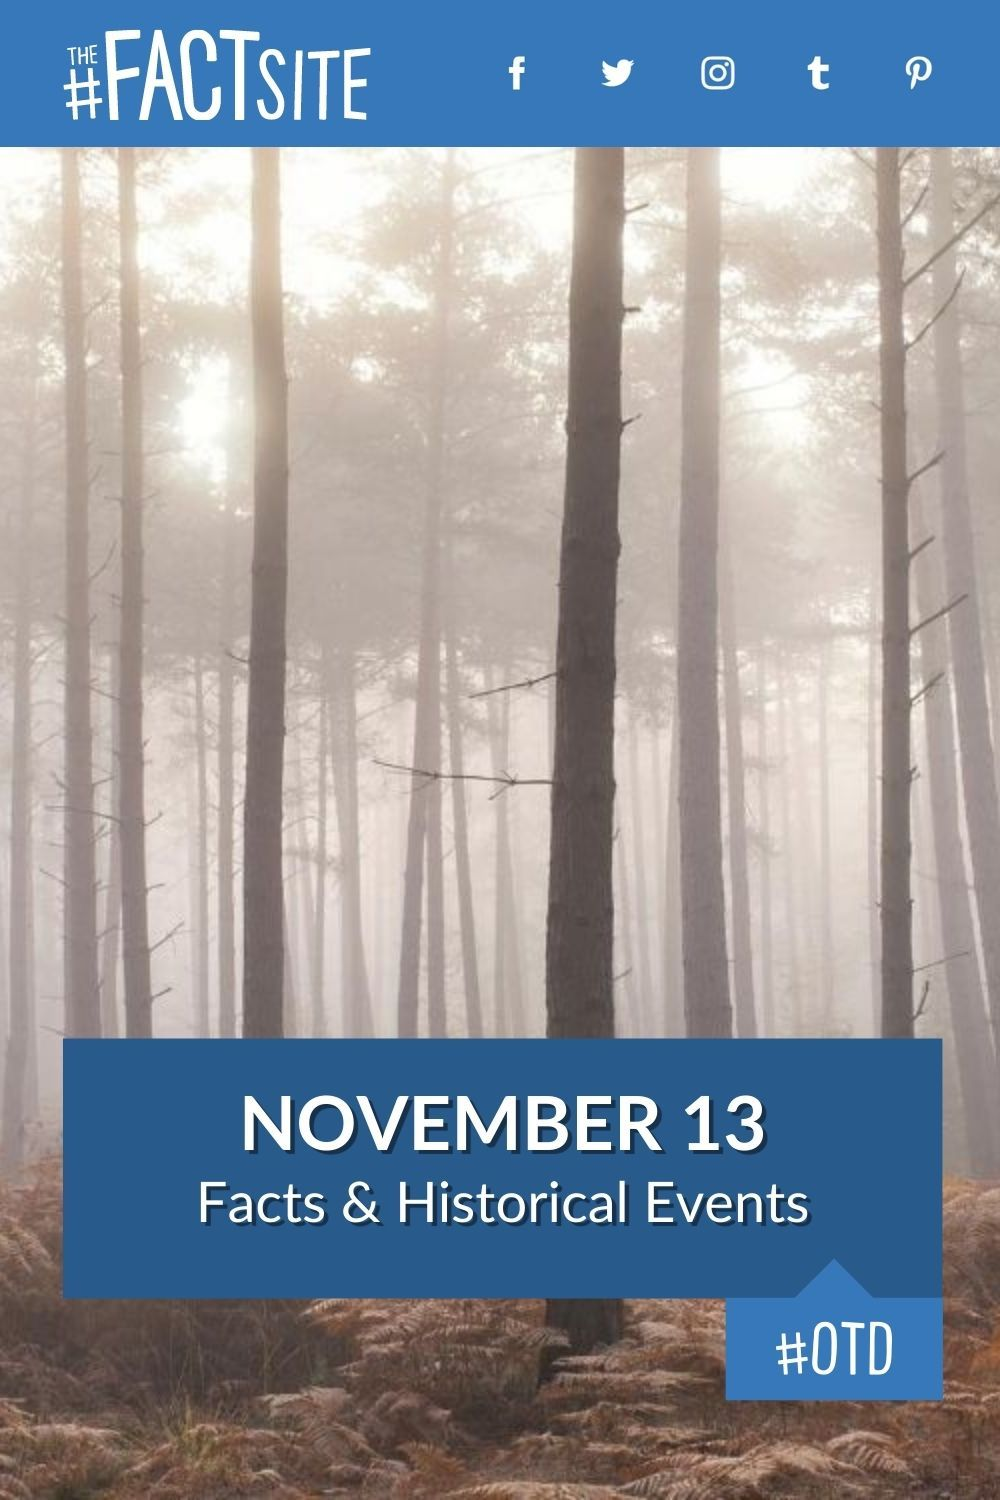 Facts & Historic Events That Happened on November 13